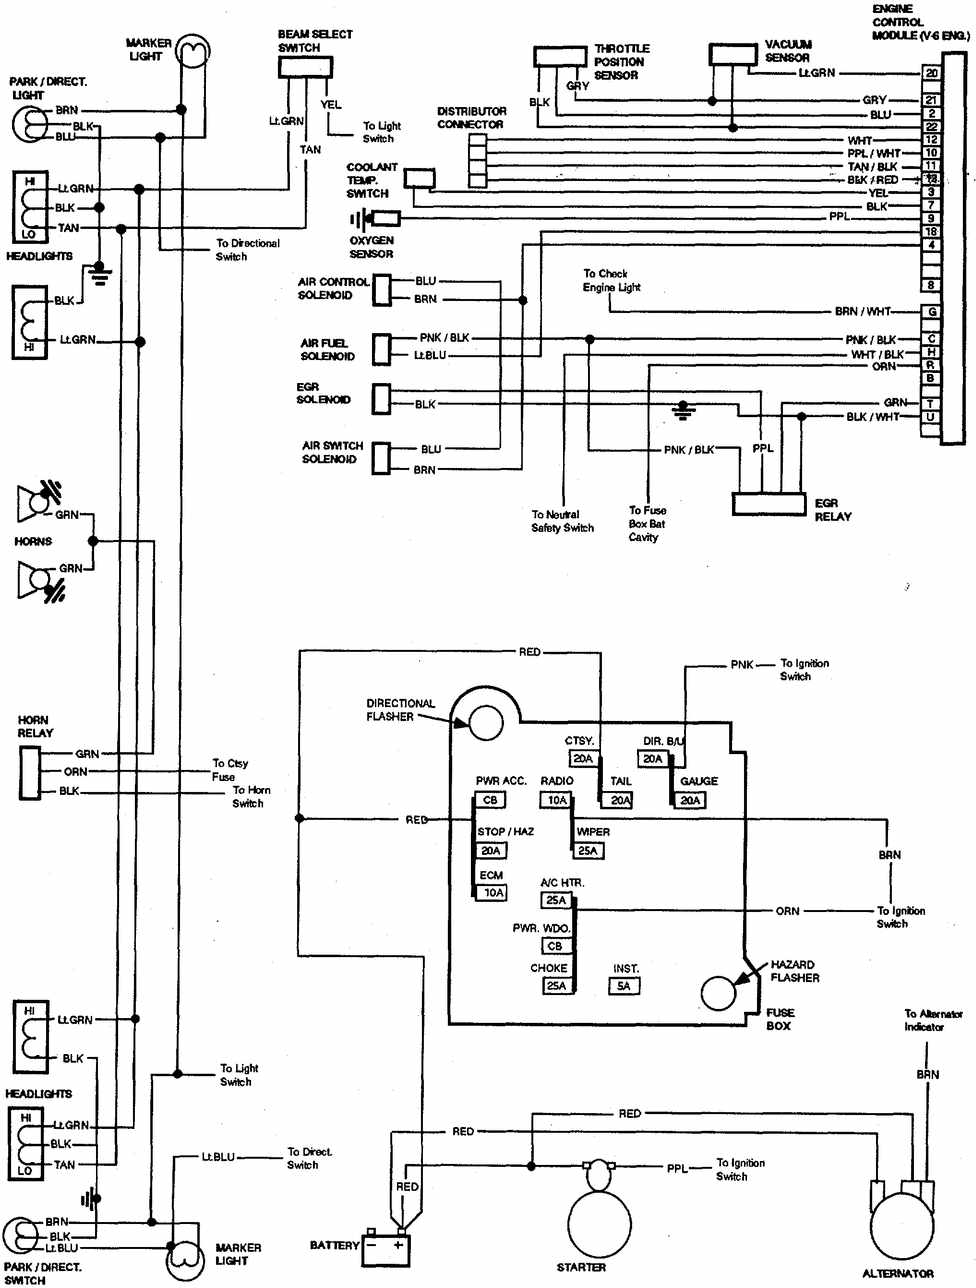 Chevrolet V Trucks Electrical Wiring Diagram on 2002 rav4 transmission ecm location